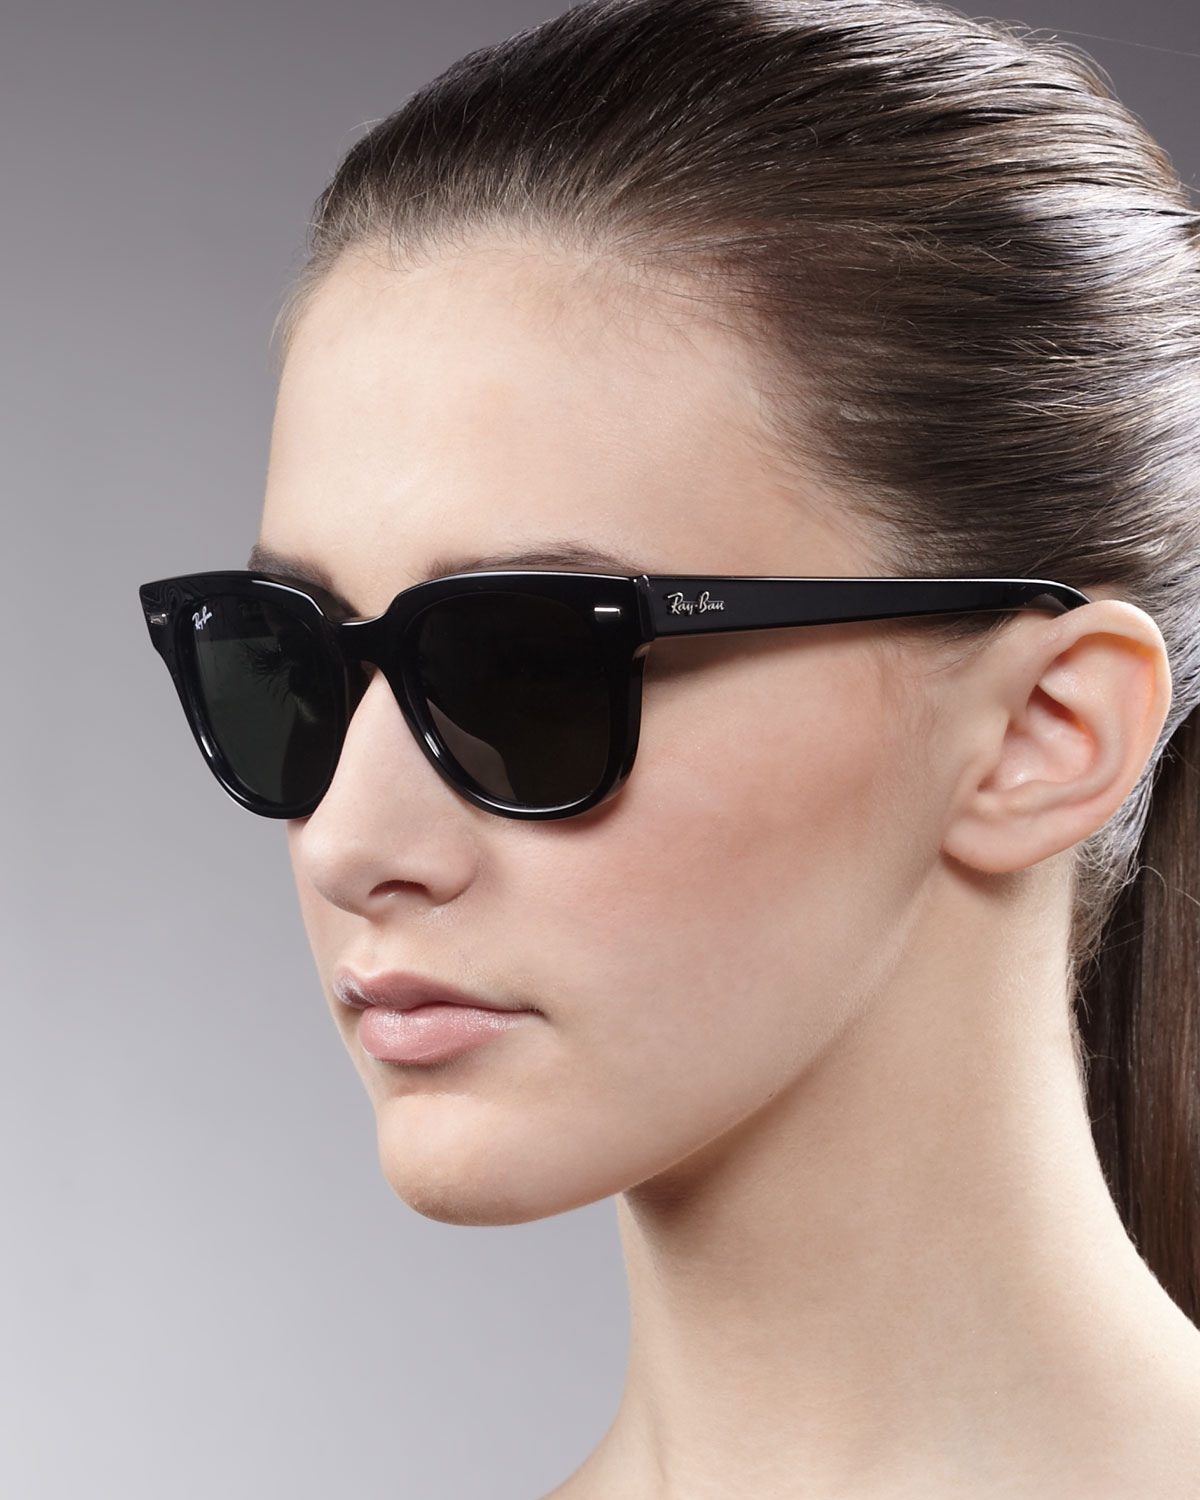 all black ray ban wayfarer  Ray-ban Icons Wayfarer Sunglasses in Black